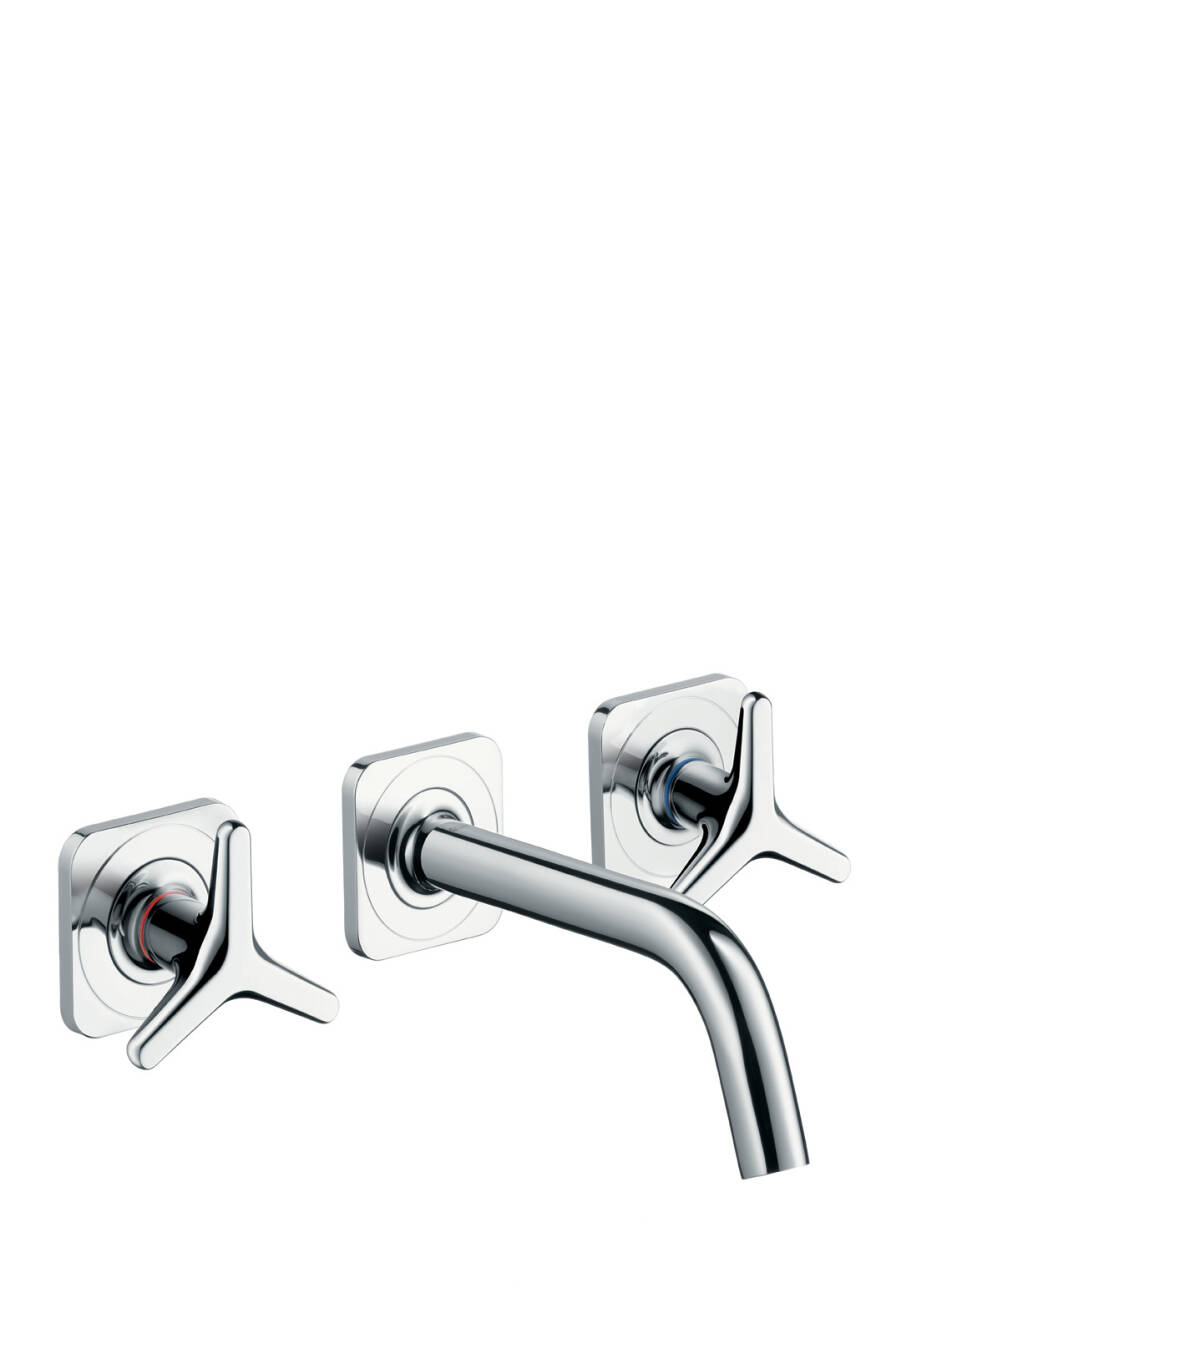 3-hole basin mixer for concealed installation wall-mounted with spout 166 mm, star handles and escutcheons, Chrome, 34215000